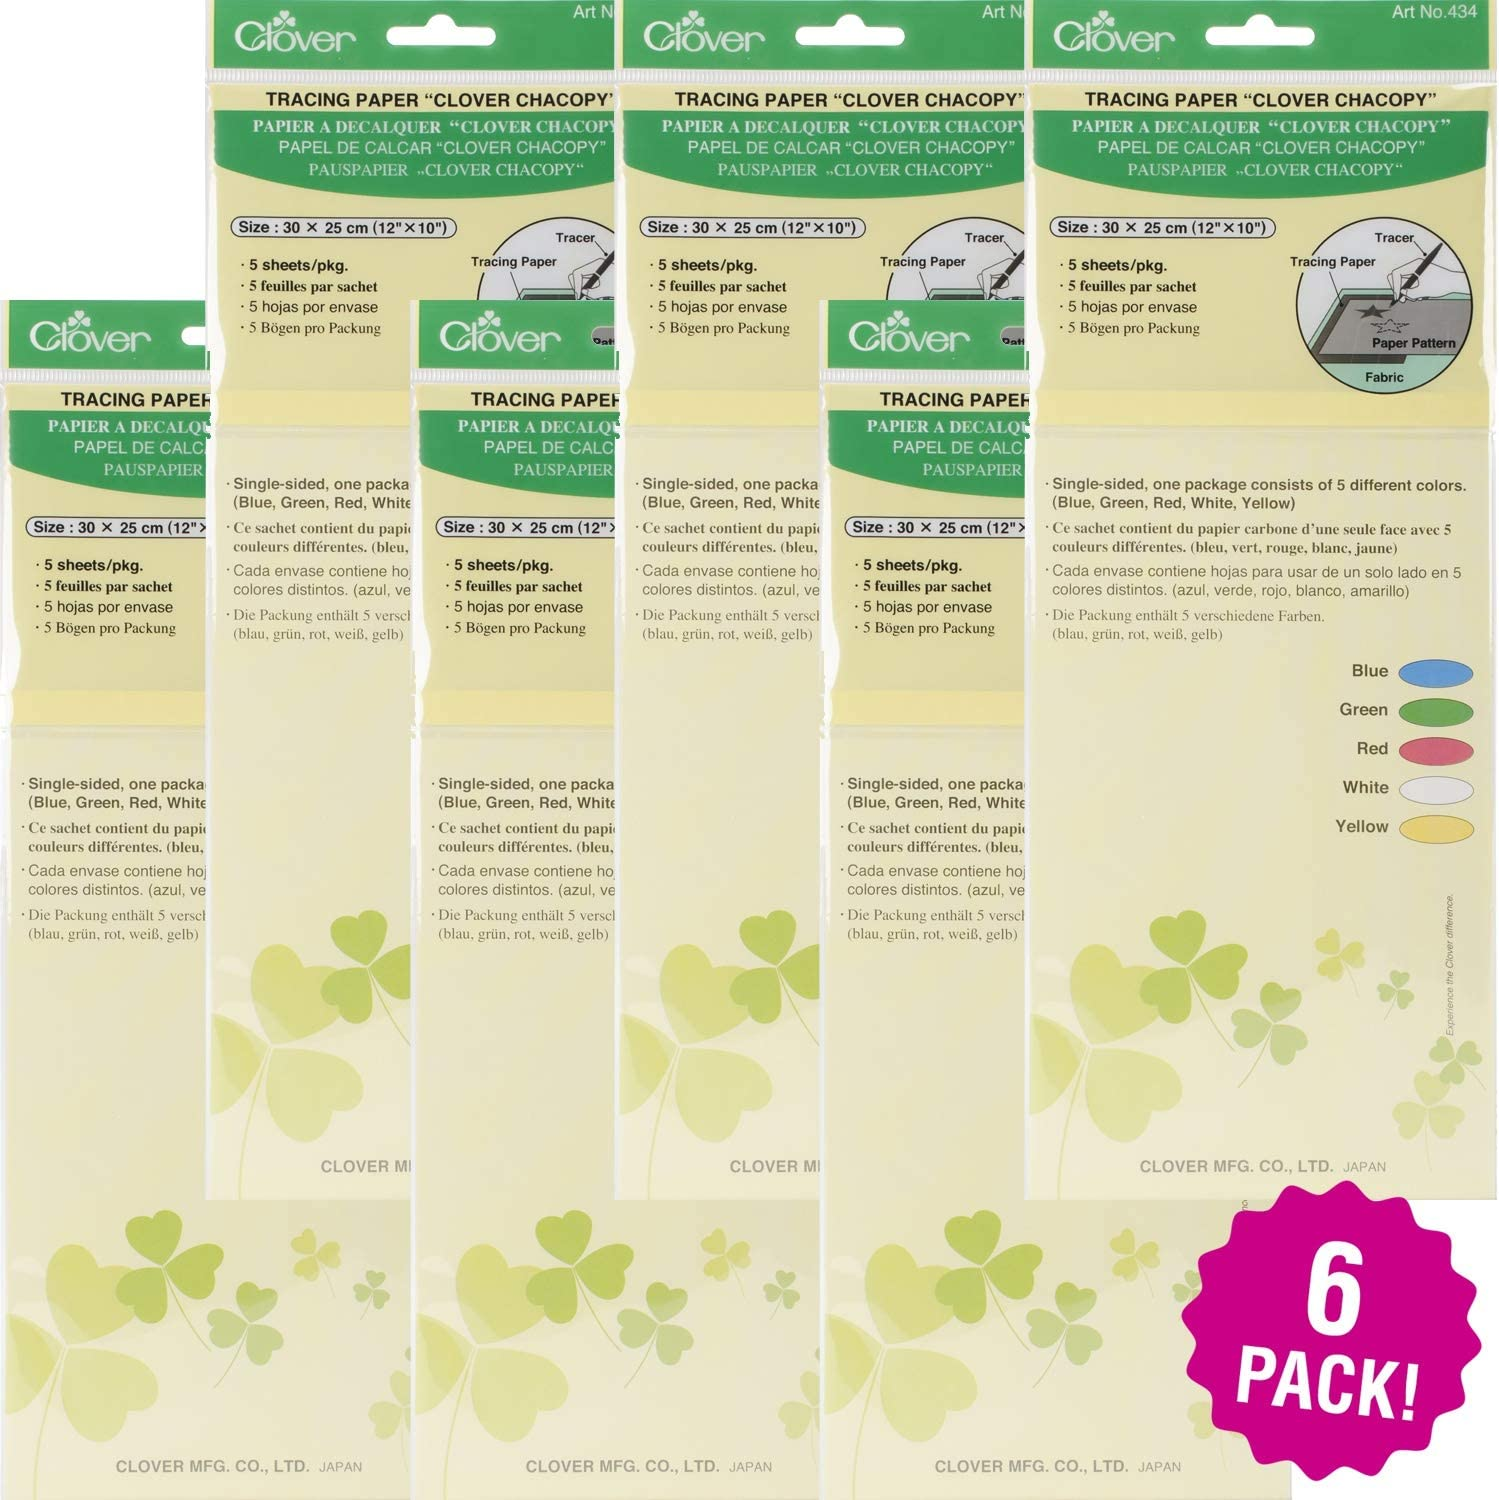 6//Pk-12X10 ODDITIES Clover Chacopy Tracing Paper 5Pc